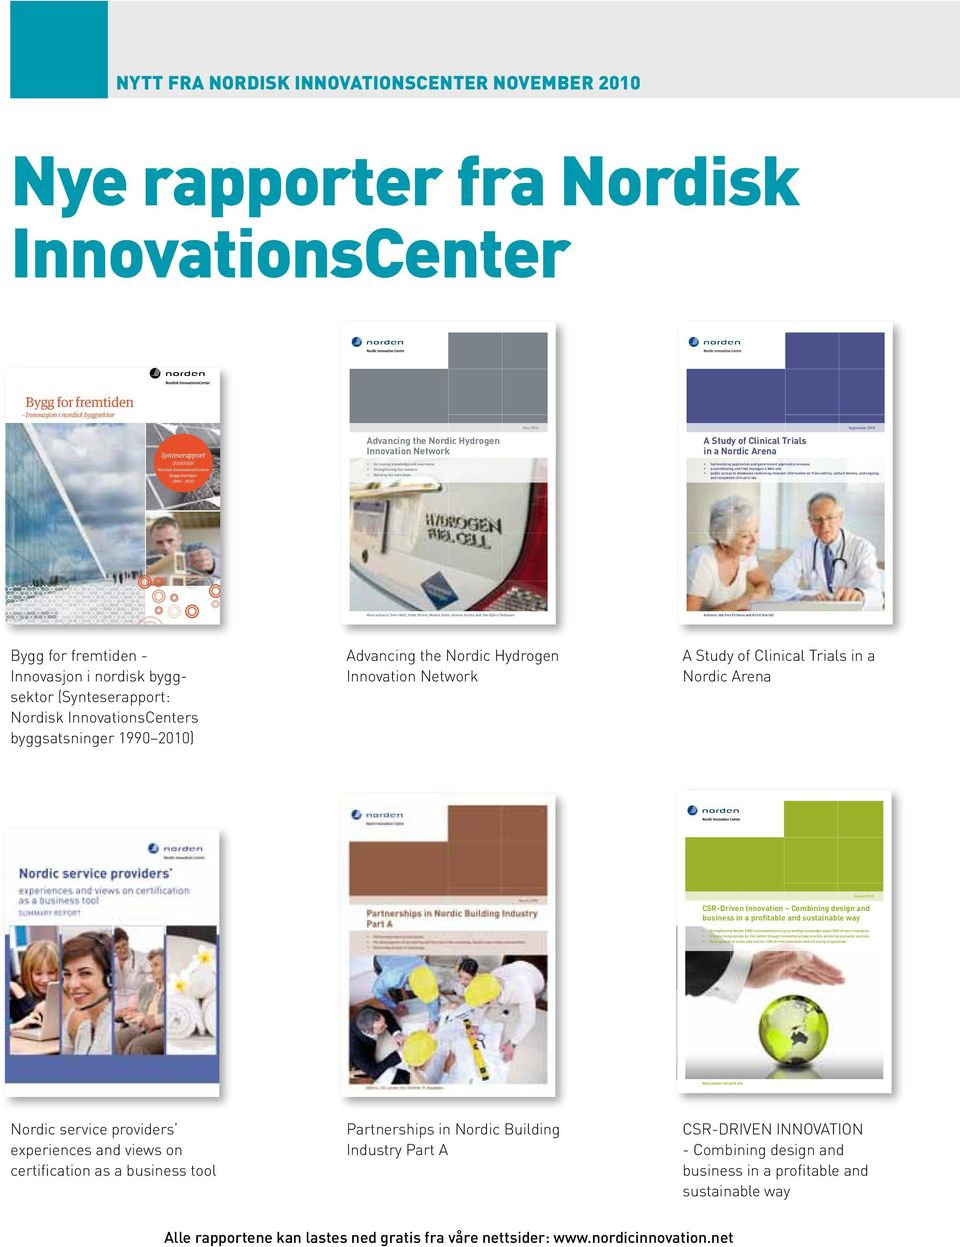 Clinical Trials in a Nordic Arena September 2010 harmonizing application and government approval processes a coordinating unit that manages a Web site public access to databases containing relevant